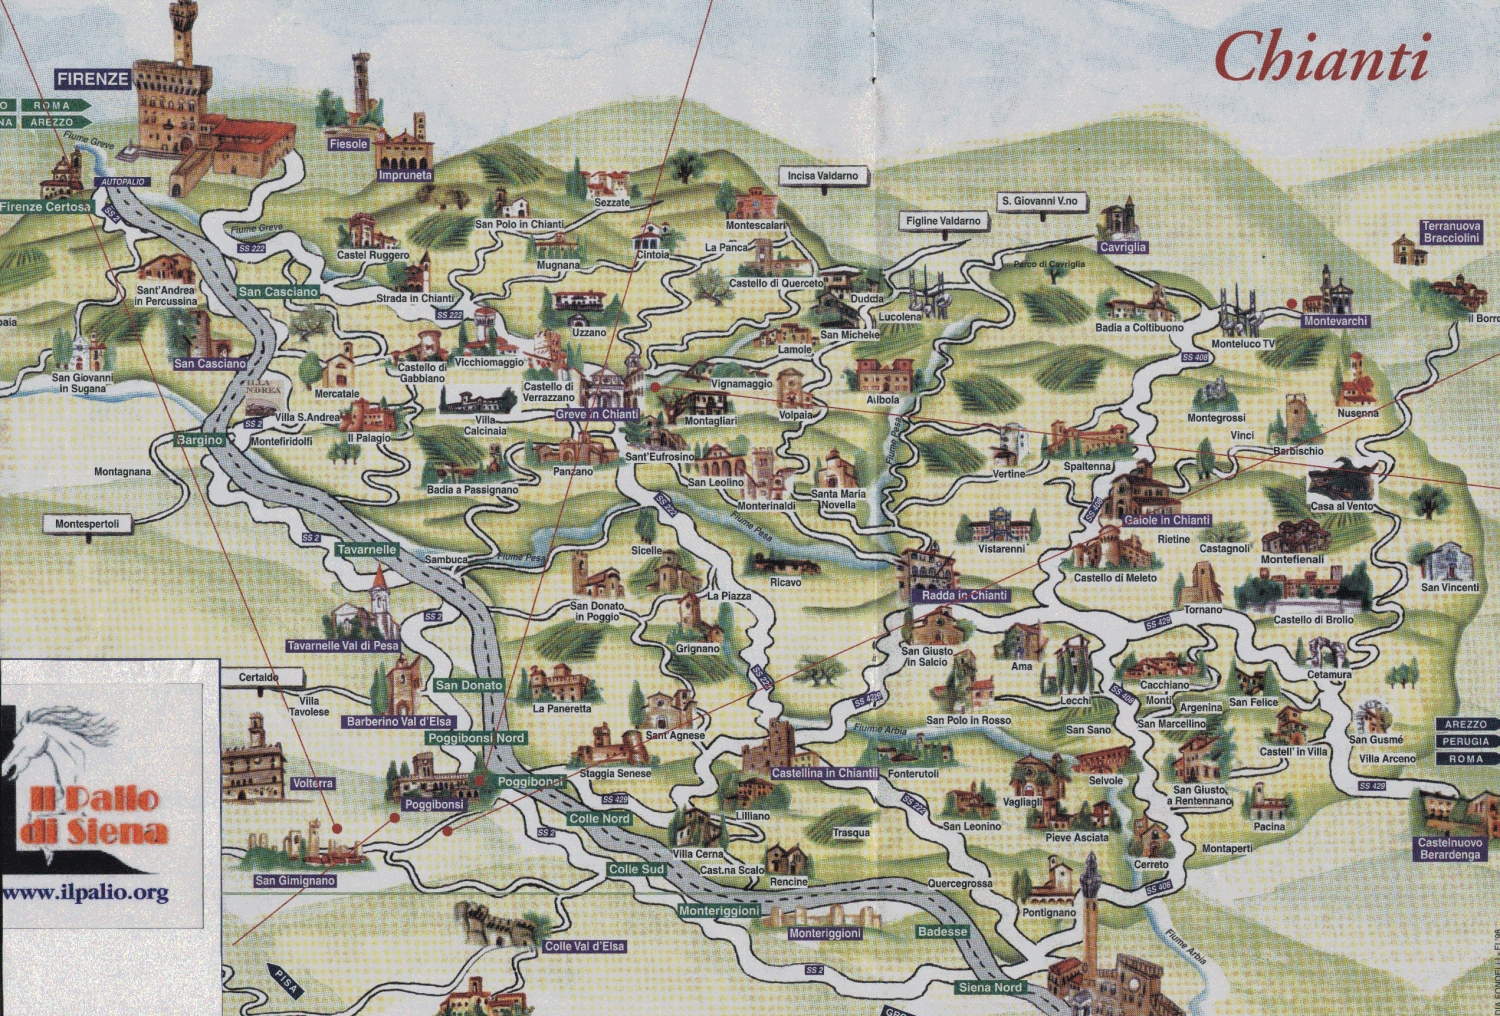 Chianti Region Italy Map.Easy Brief Chianti Travel Guide Chianti Tourist Information